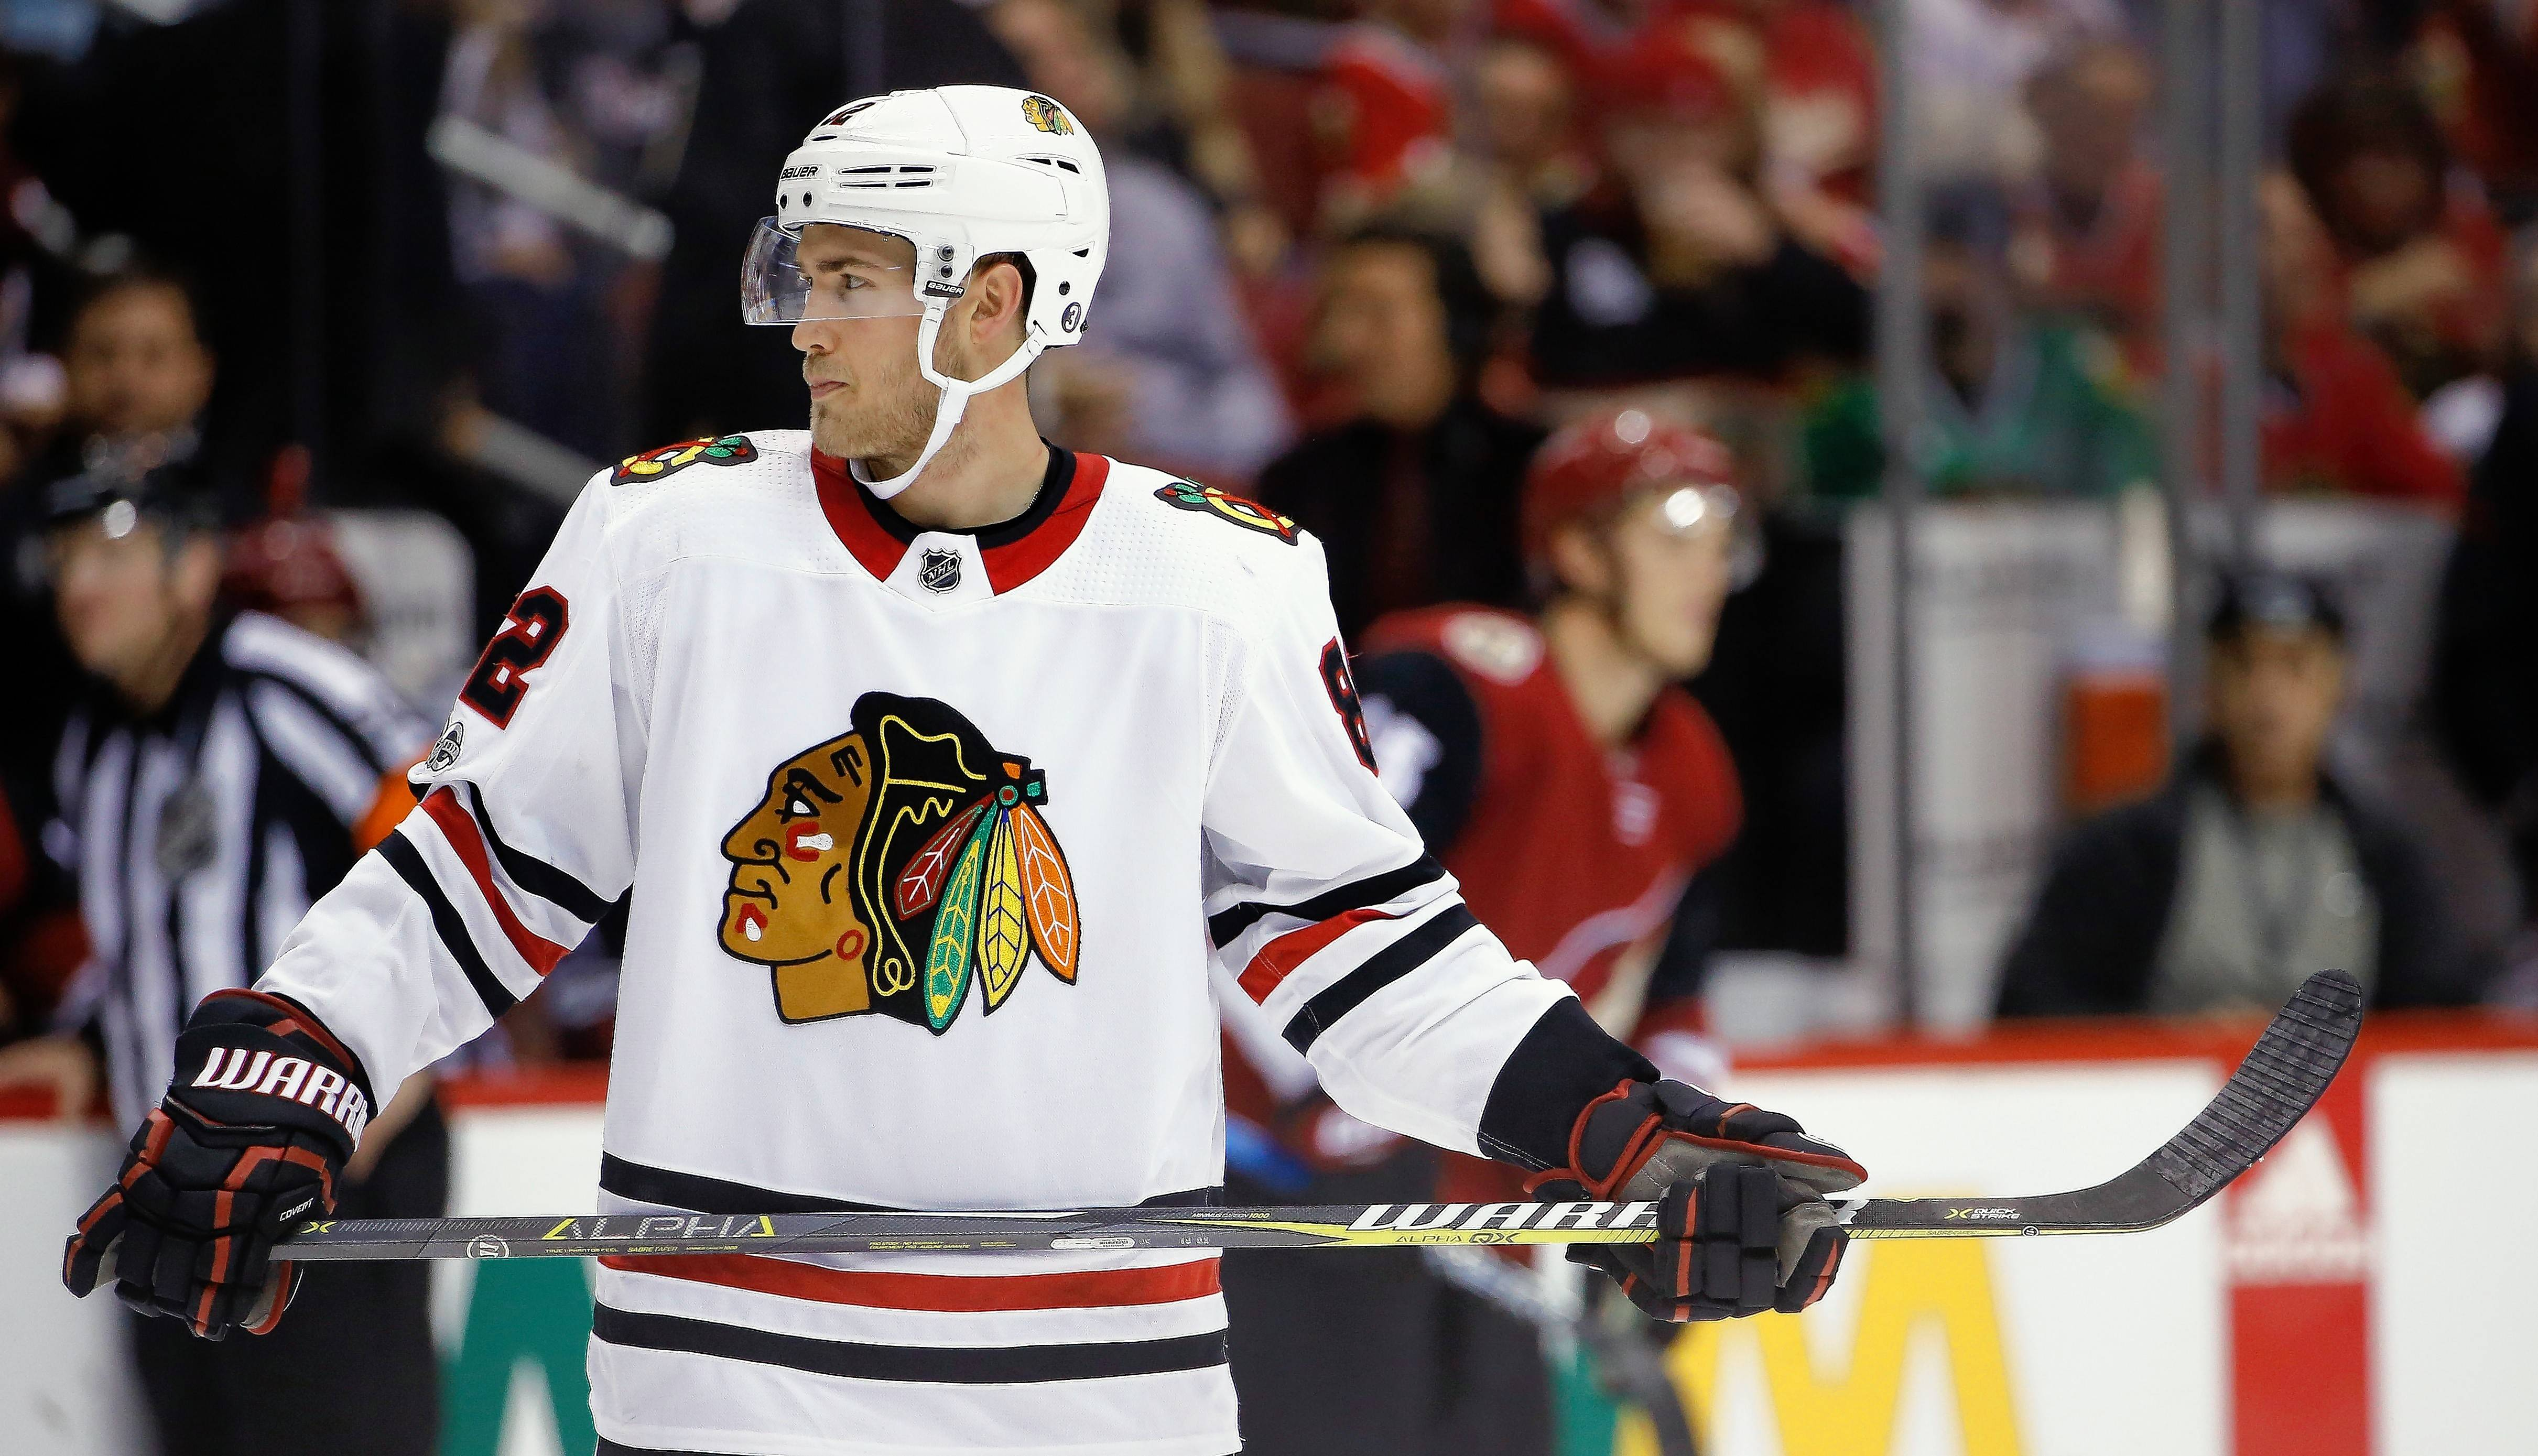 Chicago Blackhawks defenseman Jordan Oesterle loves country music and Mexican restaurants.